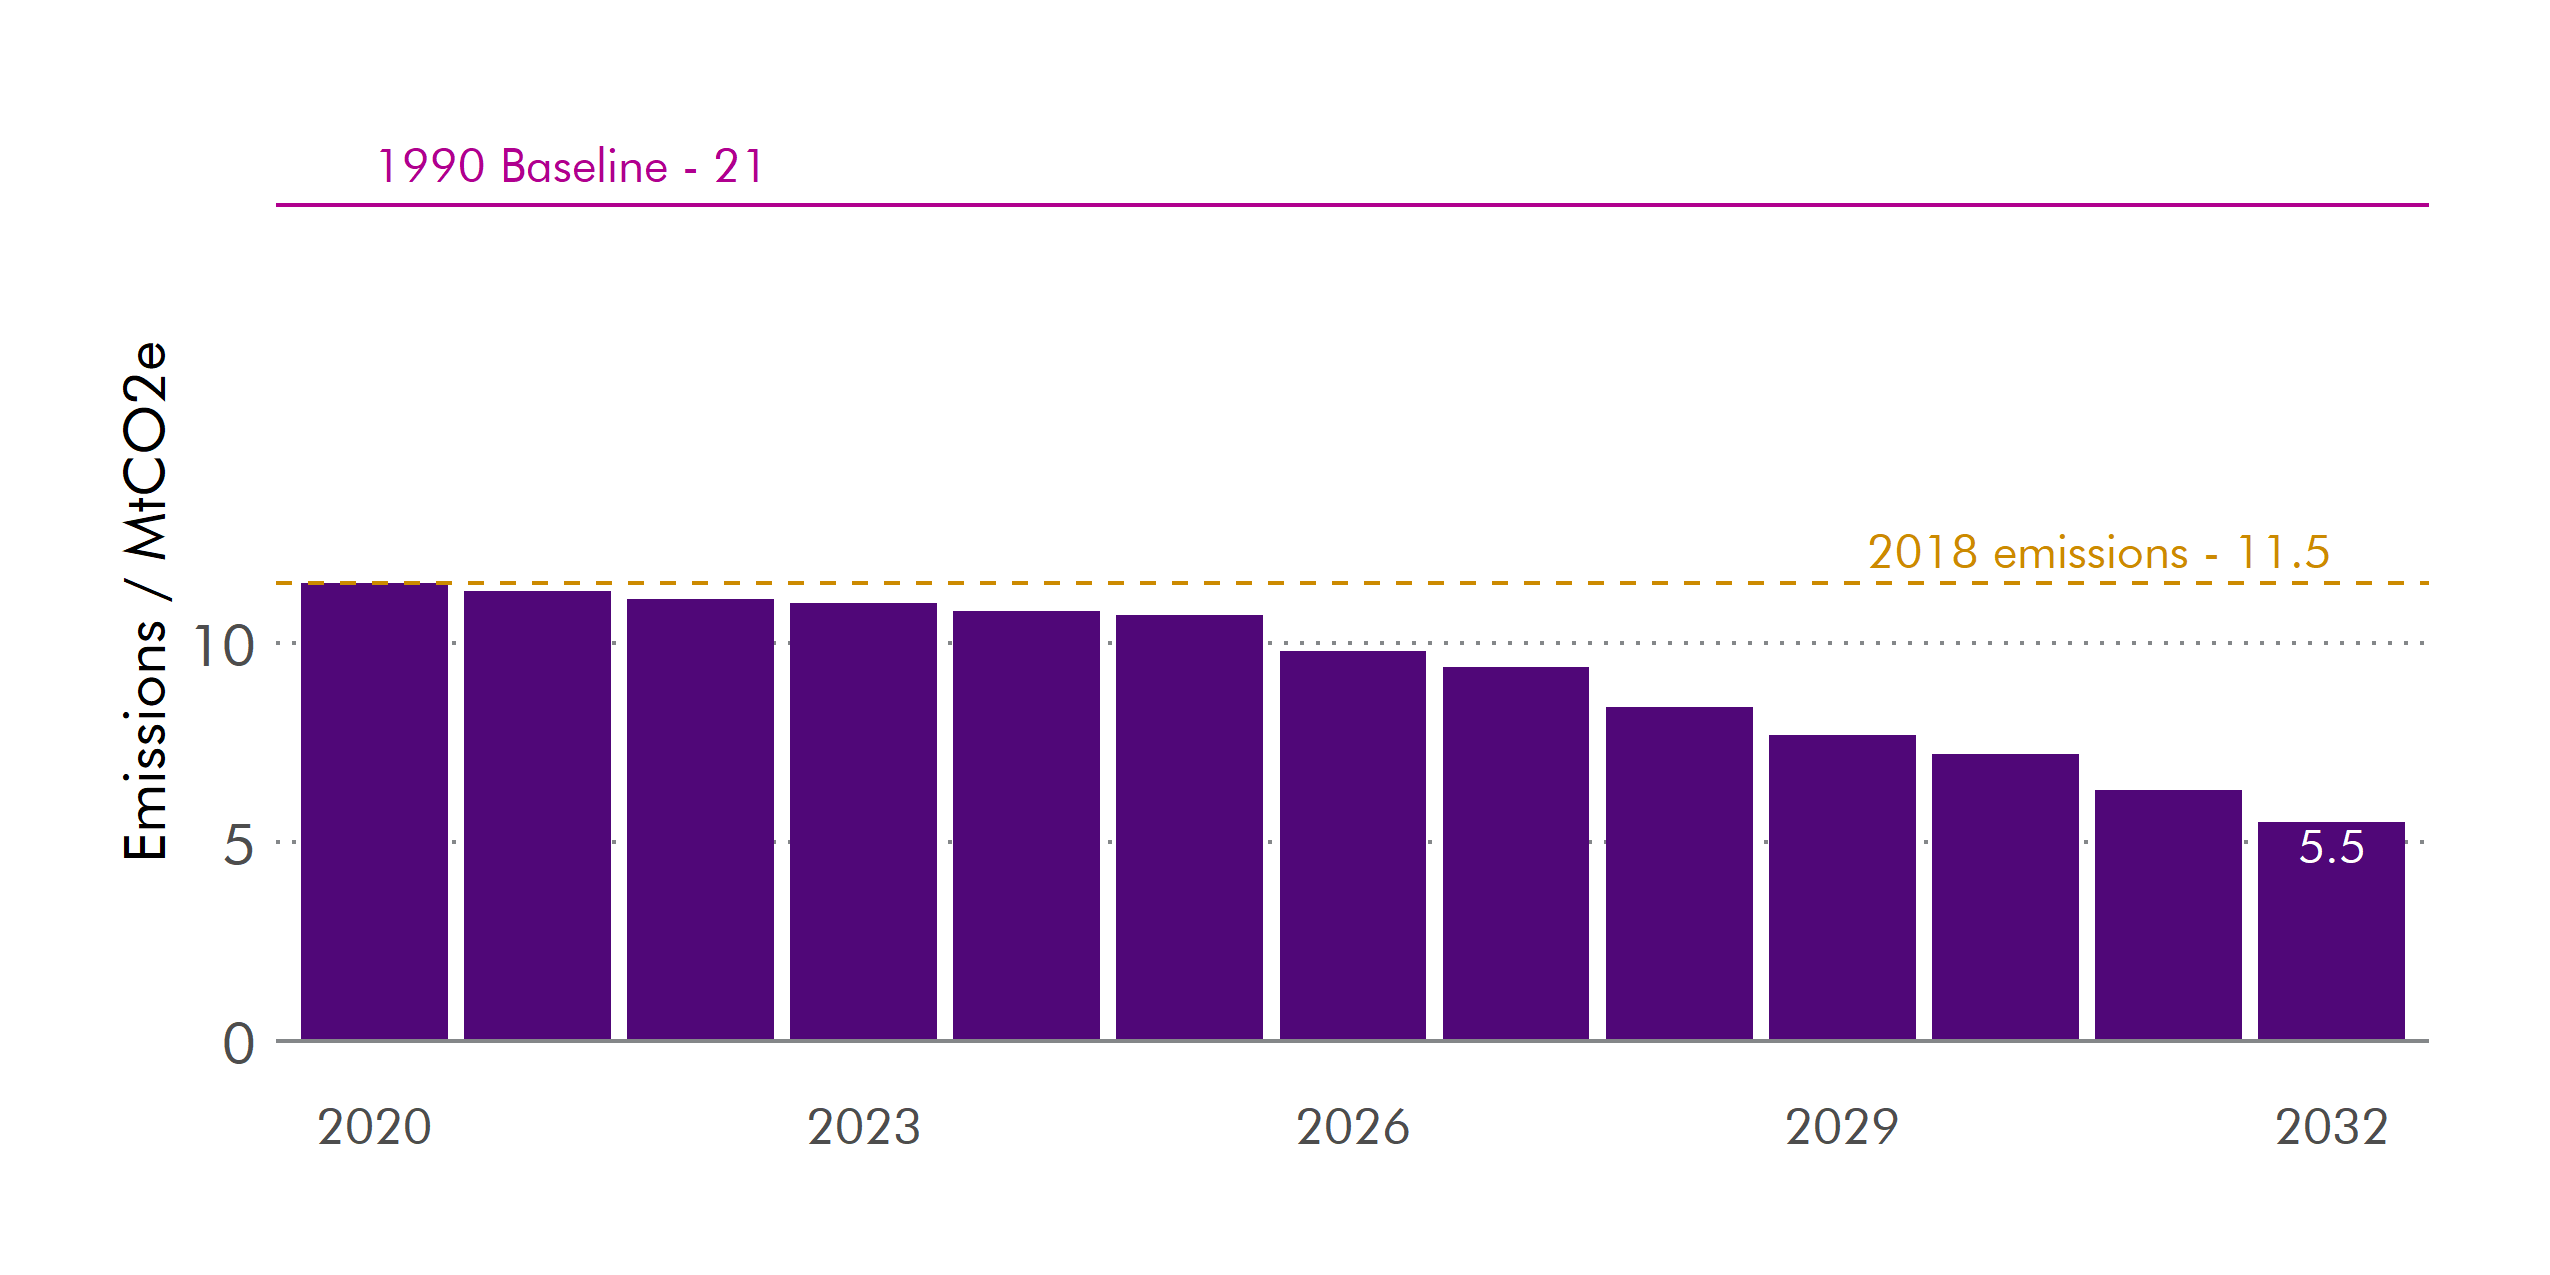 Chart showing Industry GHG emission targets 2020 to 2032